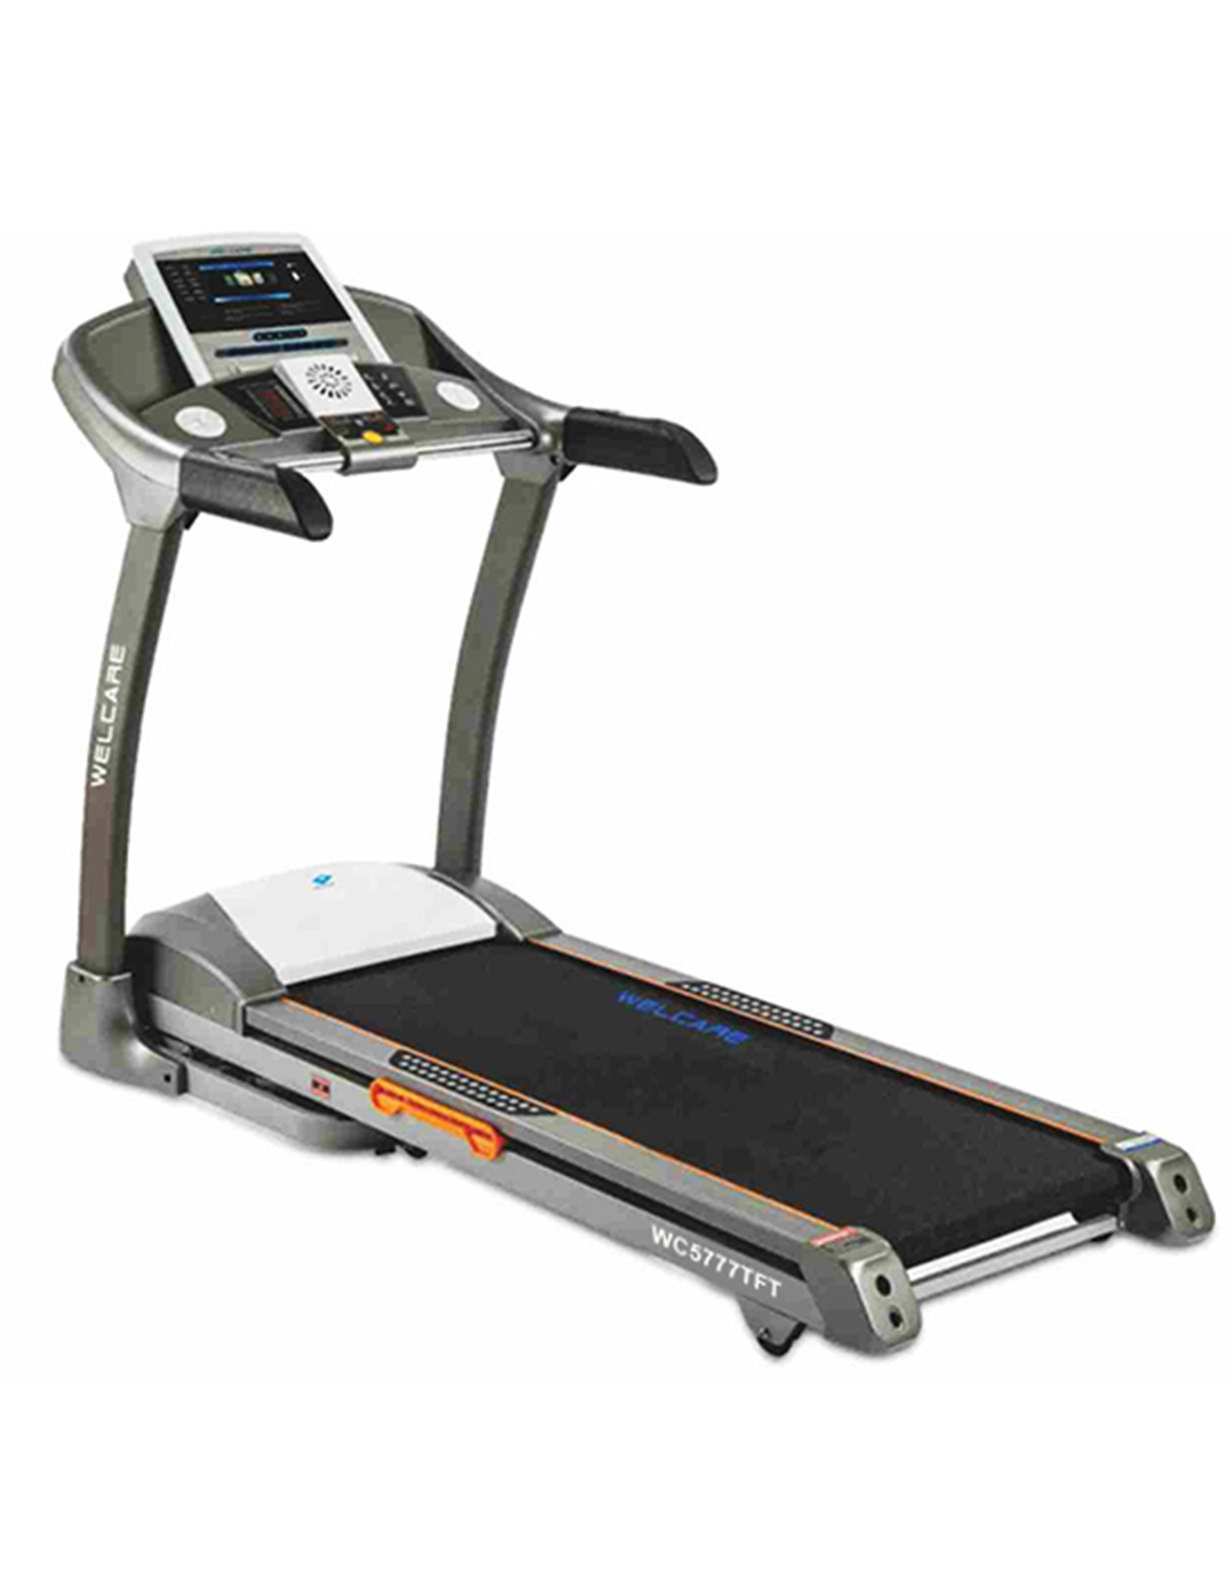 WC 5777 TFT AC MOTORIZED  TREADMILL